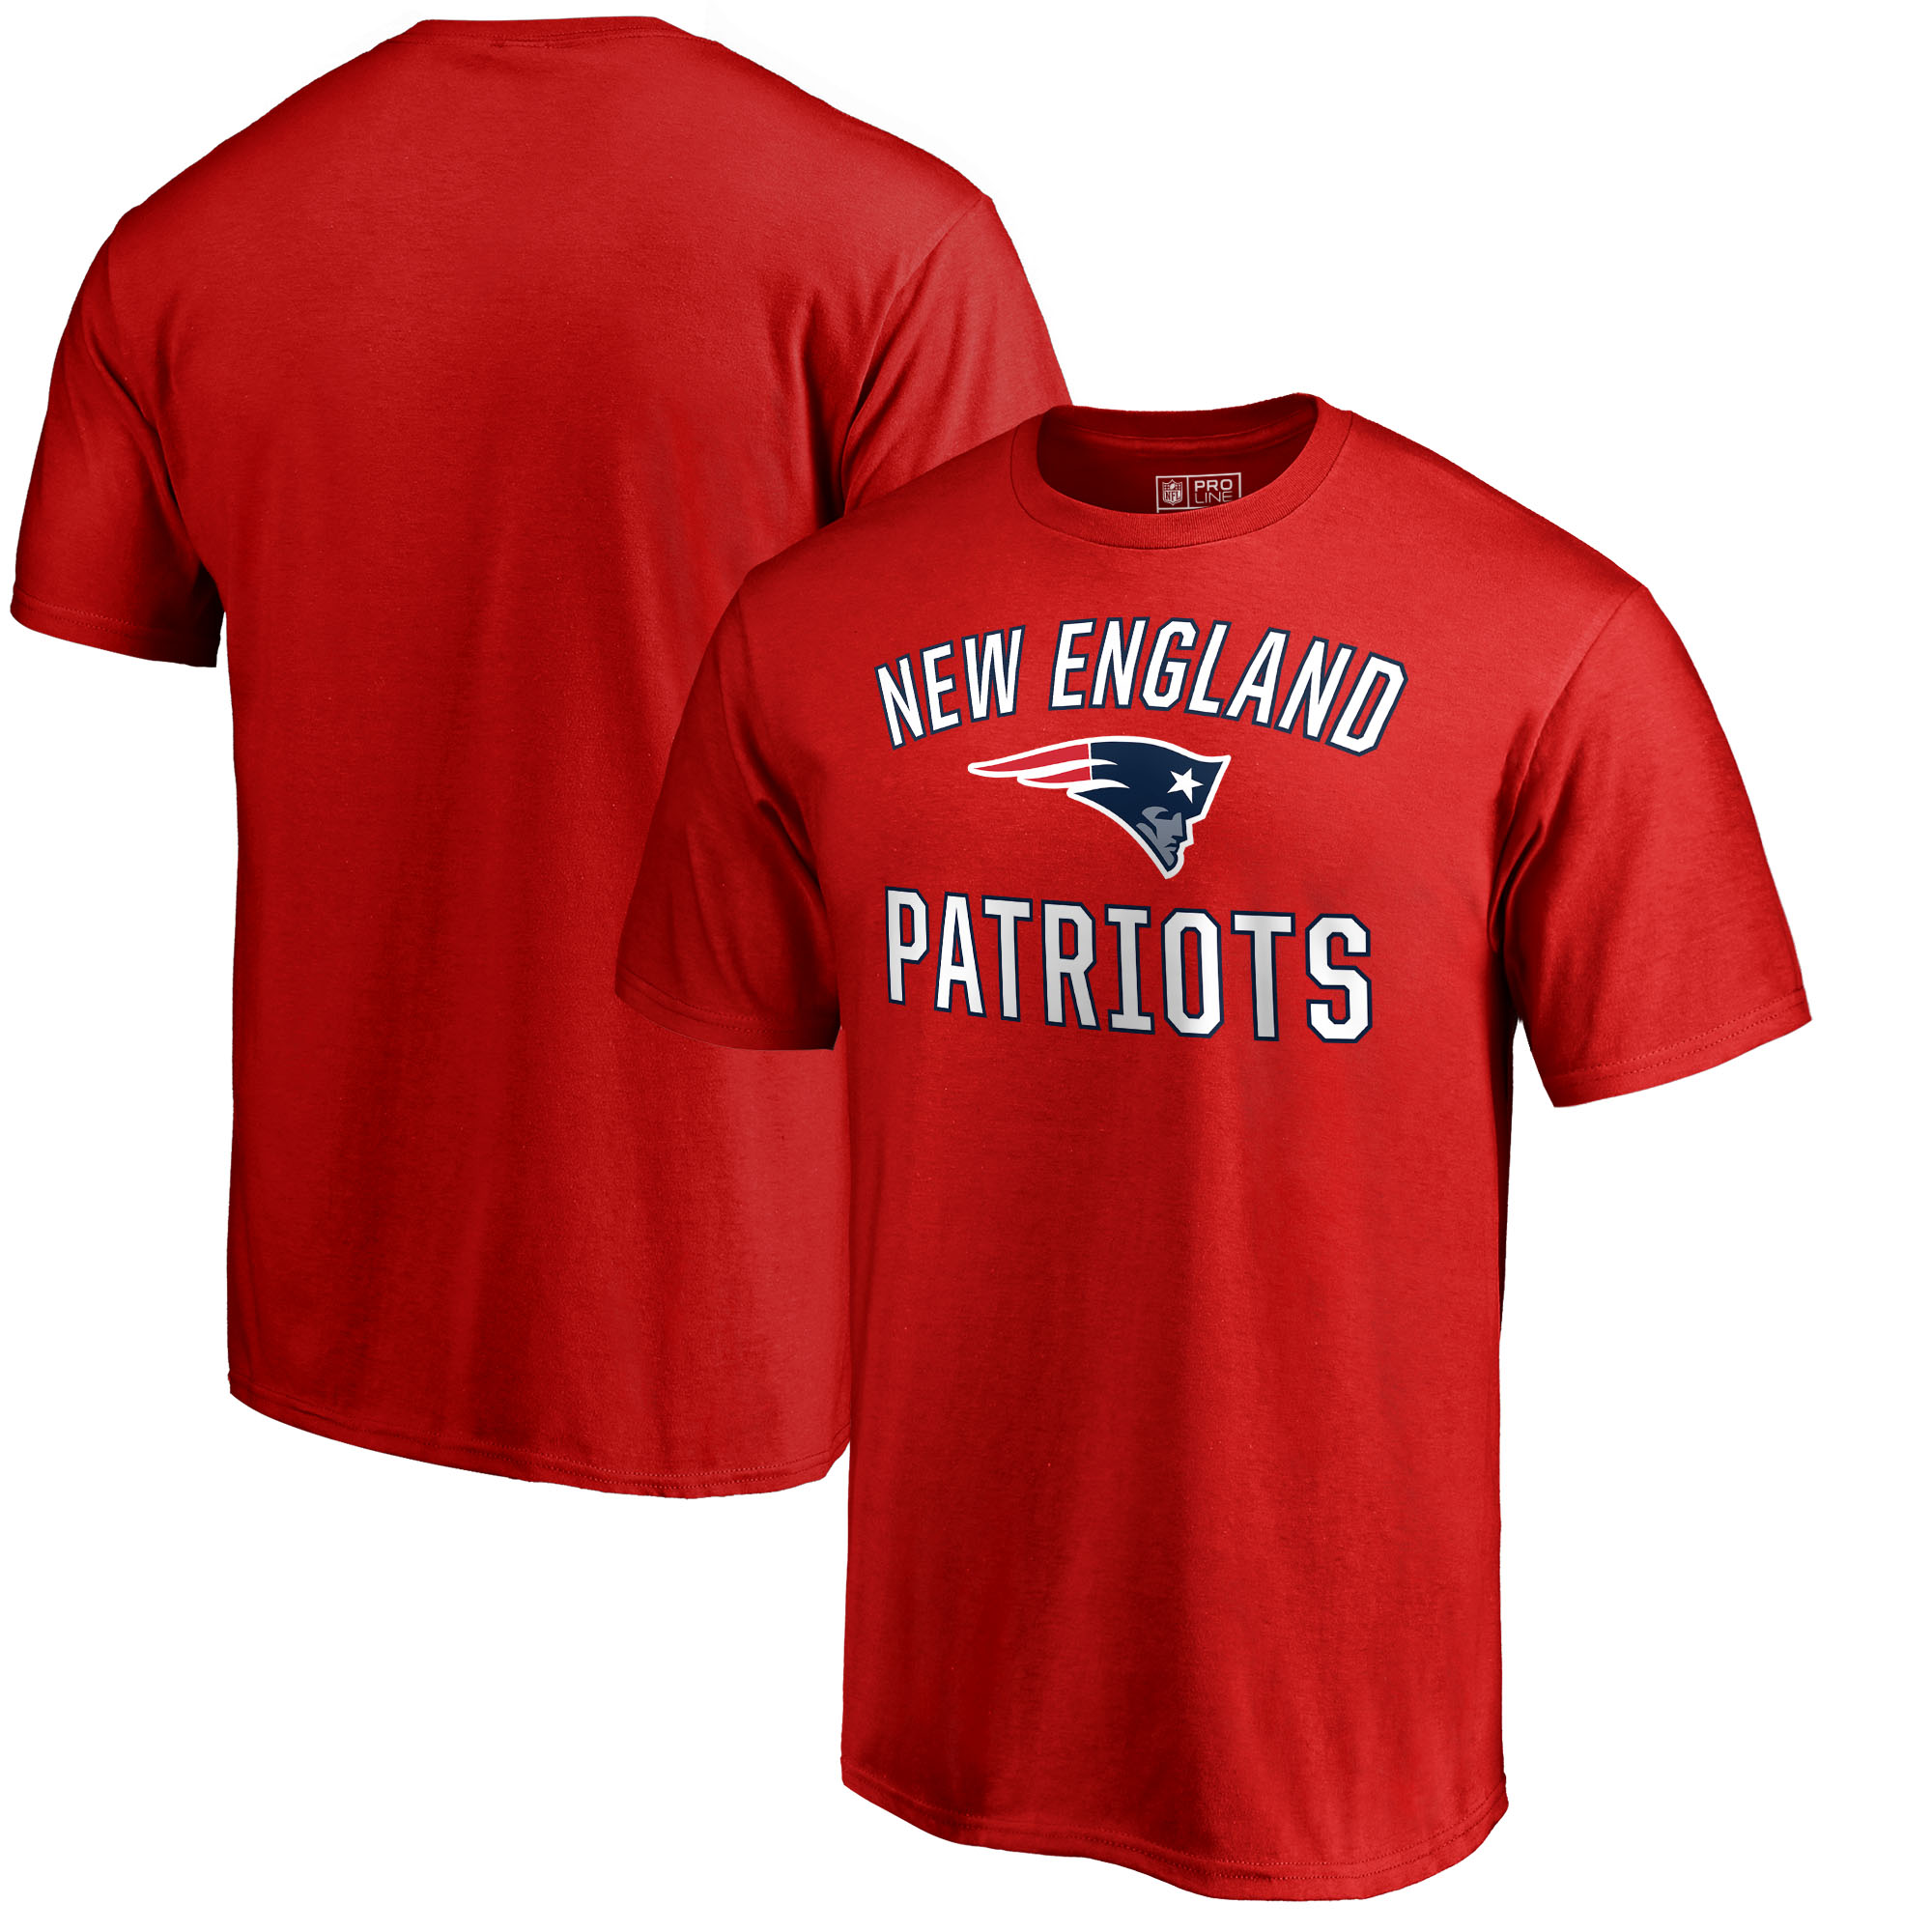 New England Patriots NFL Pro Line by Fanatics Branded Victory Arch T-Shirt - Red